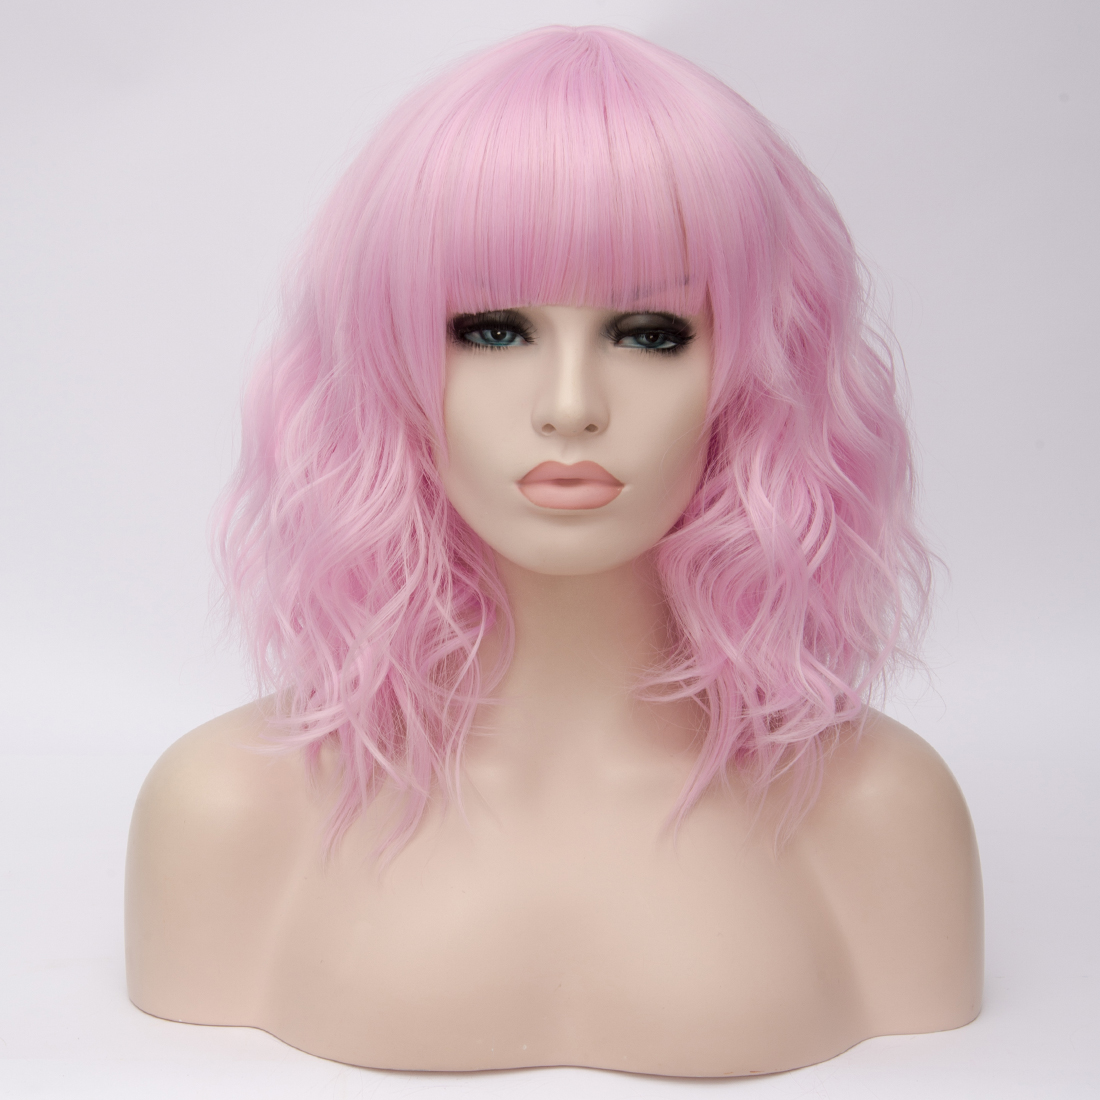 Hd6e4ed1b59ff4a789631dfe4863700c3v - Similler Short Synthetic Wig for Women Cosplay Curly Hair Heat Resistance Ombre Color Blue Purple Pink Green Orange Two Tones